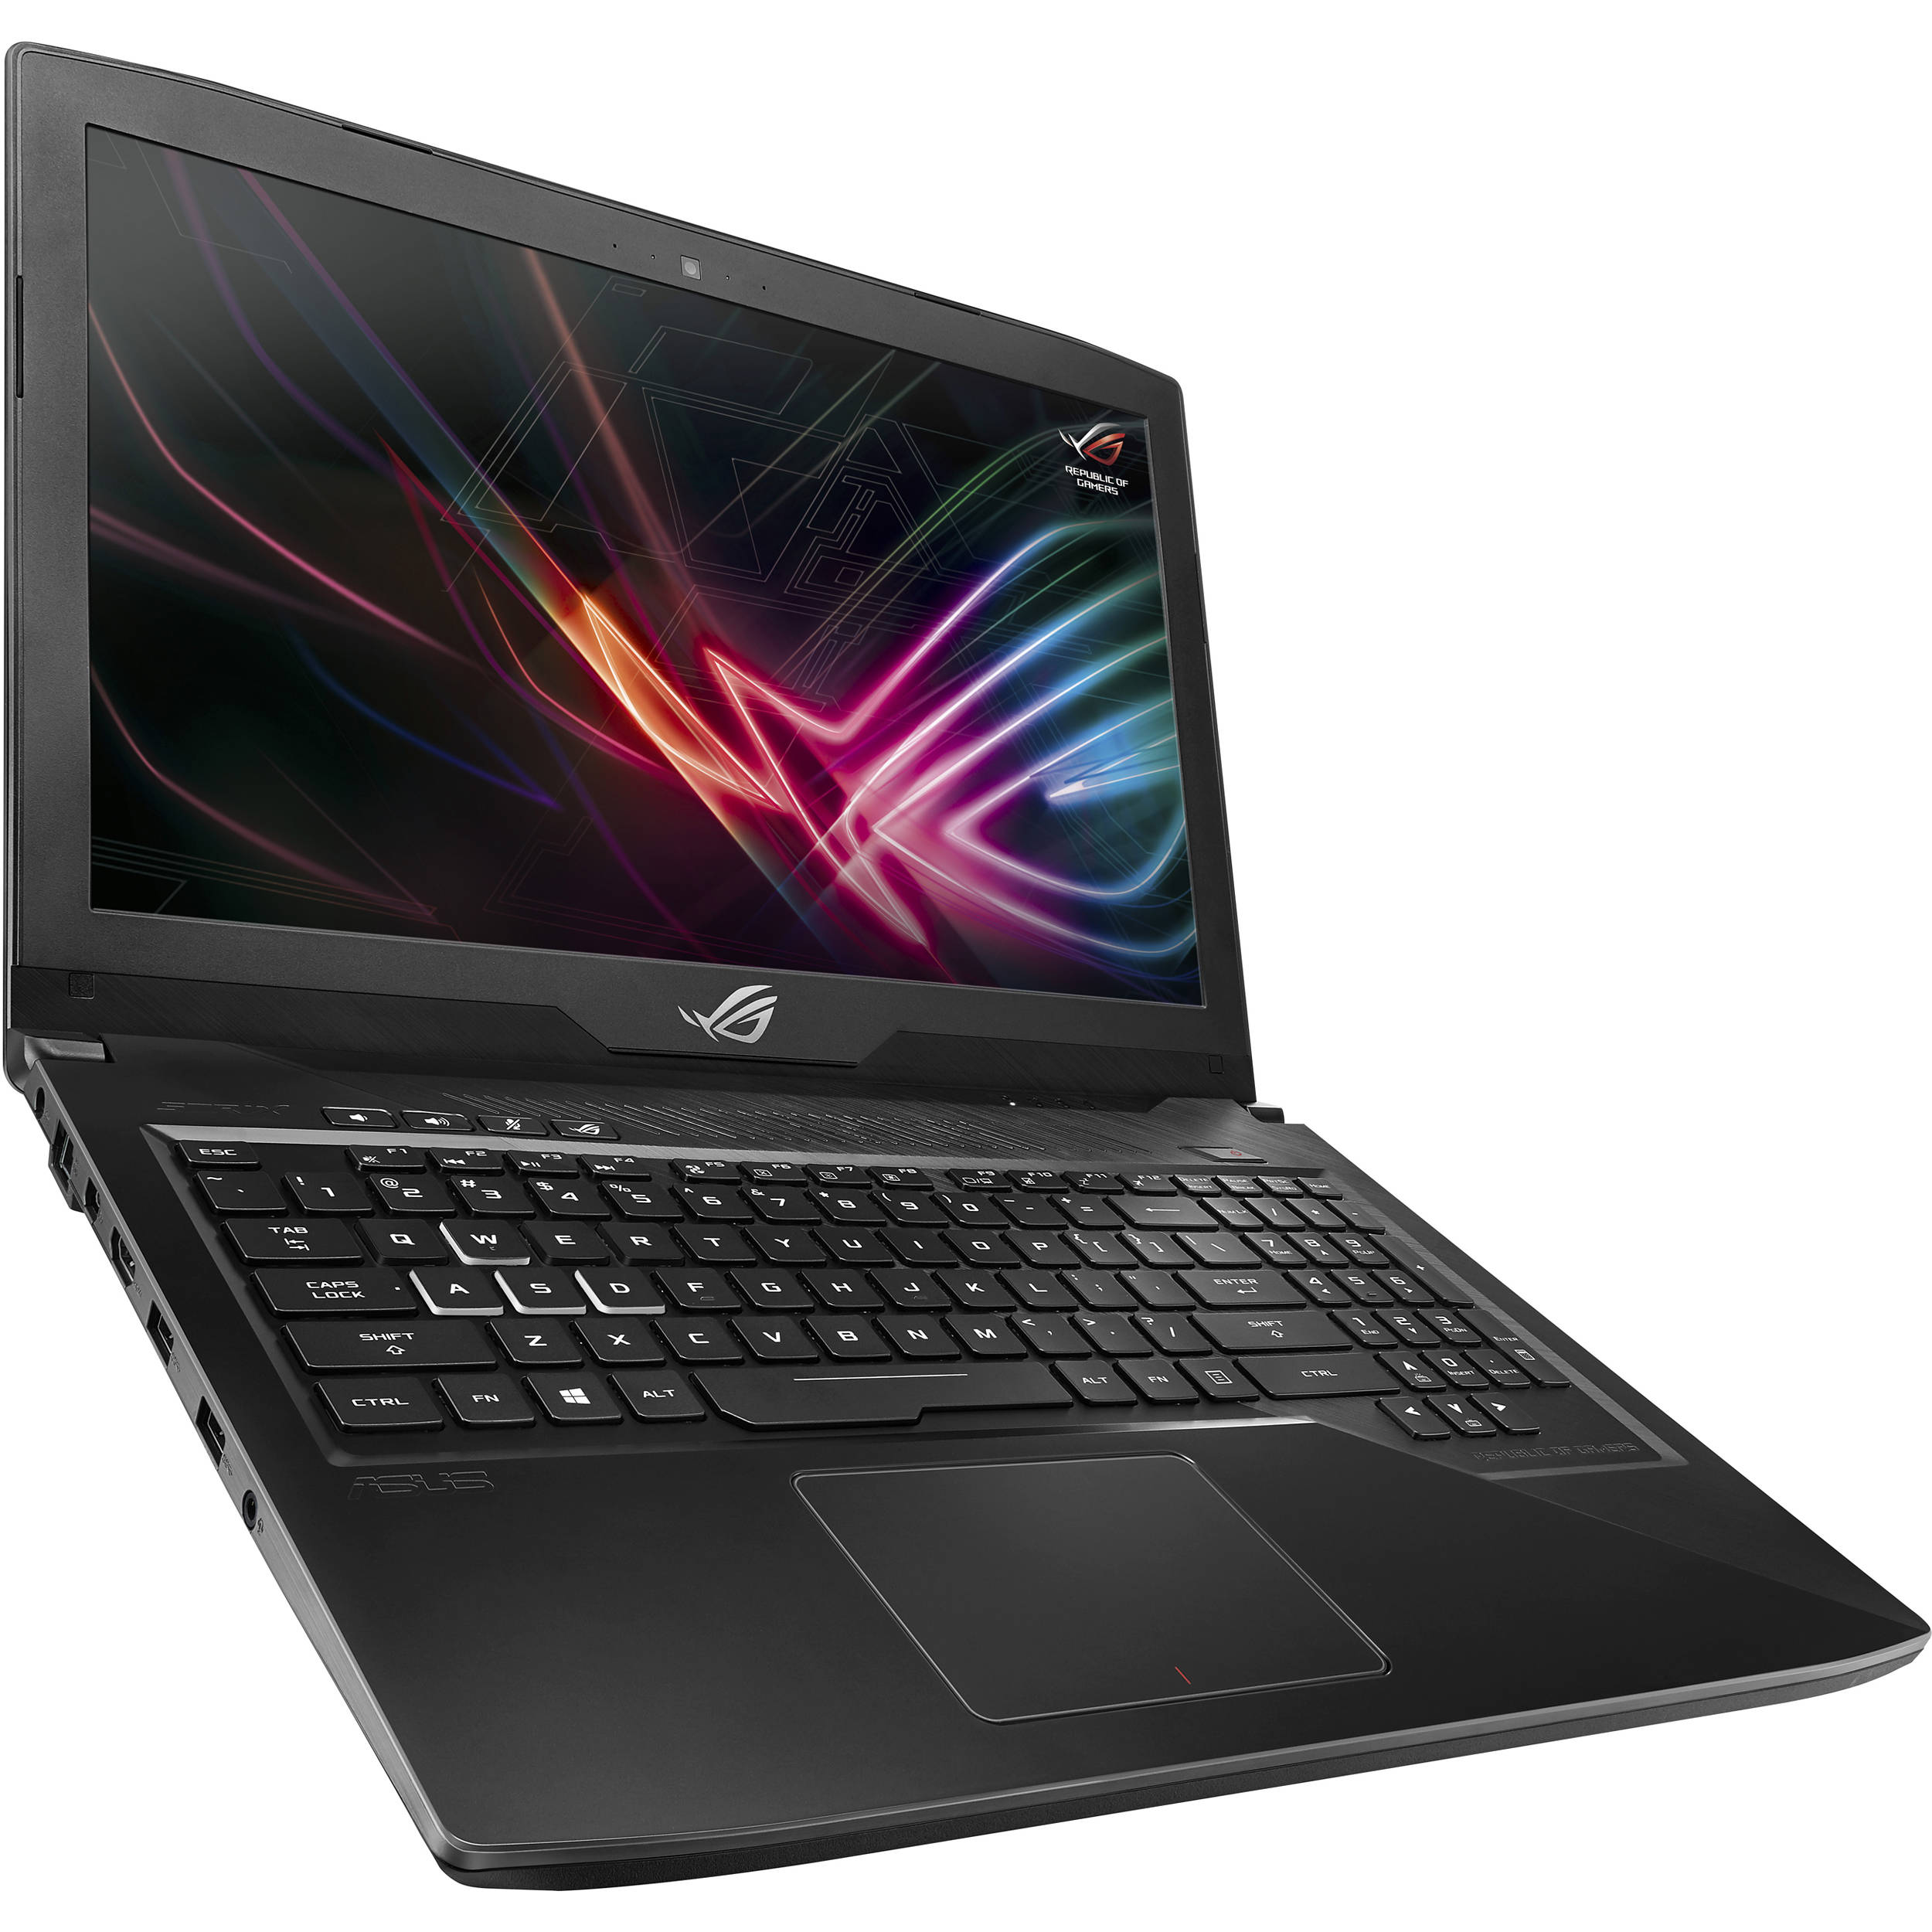 Hinnavaatlus Tehnikakaupade Hinnavrdlus Ja It Teemaline Portaal Asus A7k Laptop Block Diagram Strix Gl503vd 156 Fhd Intel Core I5 7300hq 8gb Ddr4 256gb Ssd Geforce Gtx1050 4gb Windows 10